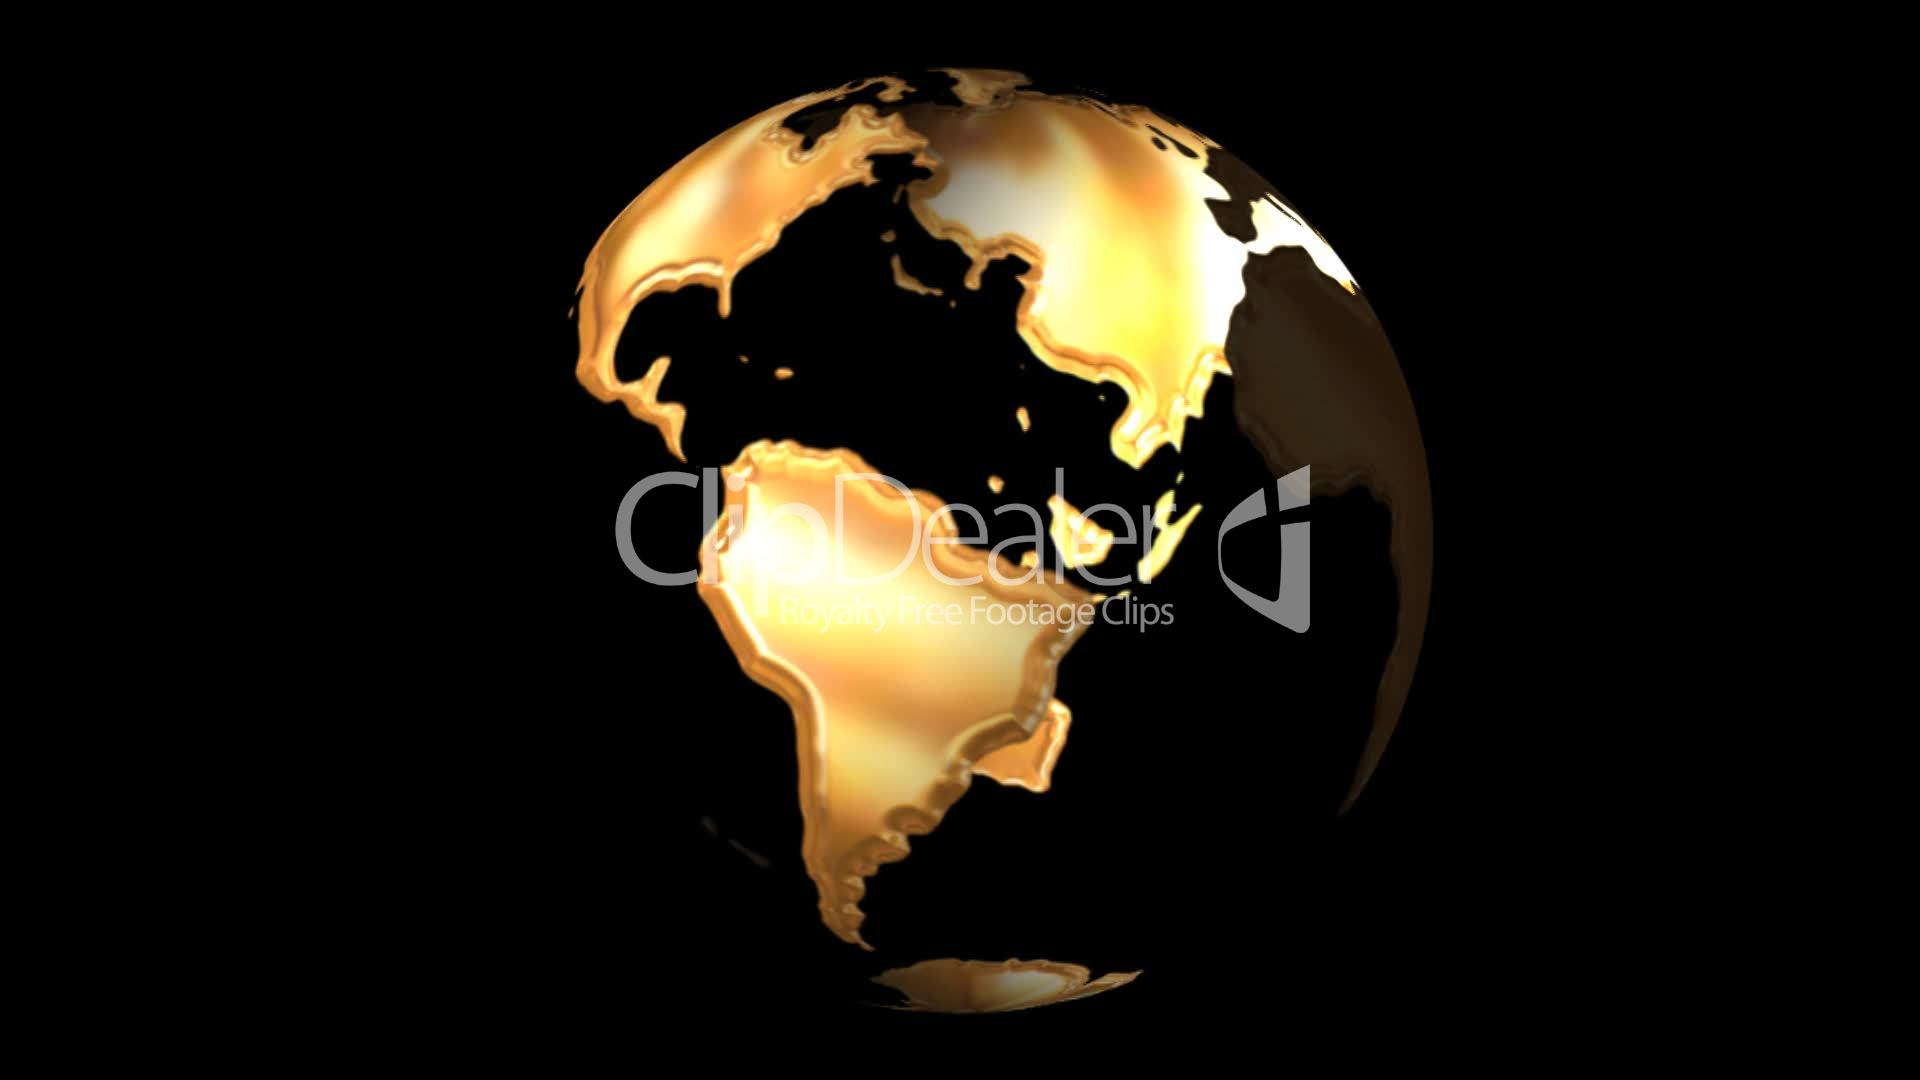 Golden earth: Royalty-free video and stock footage